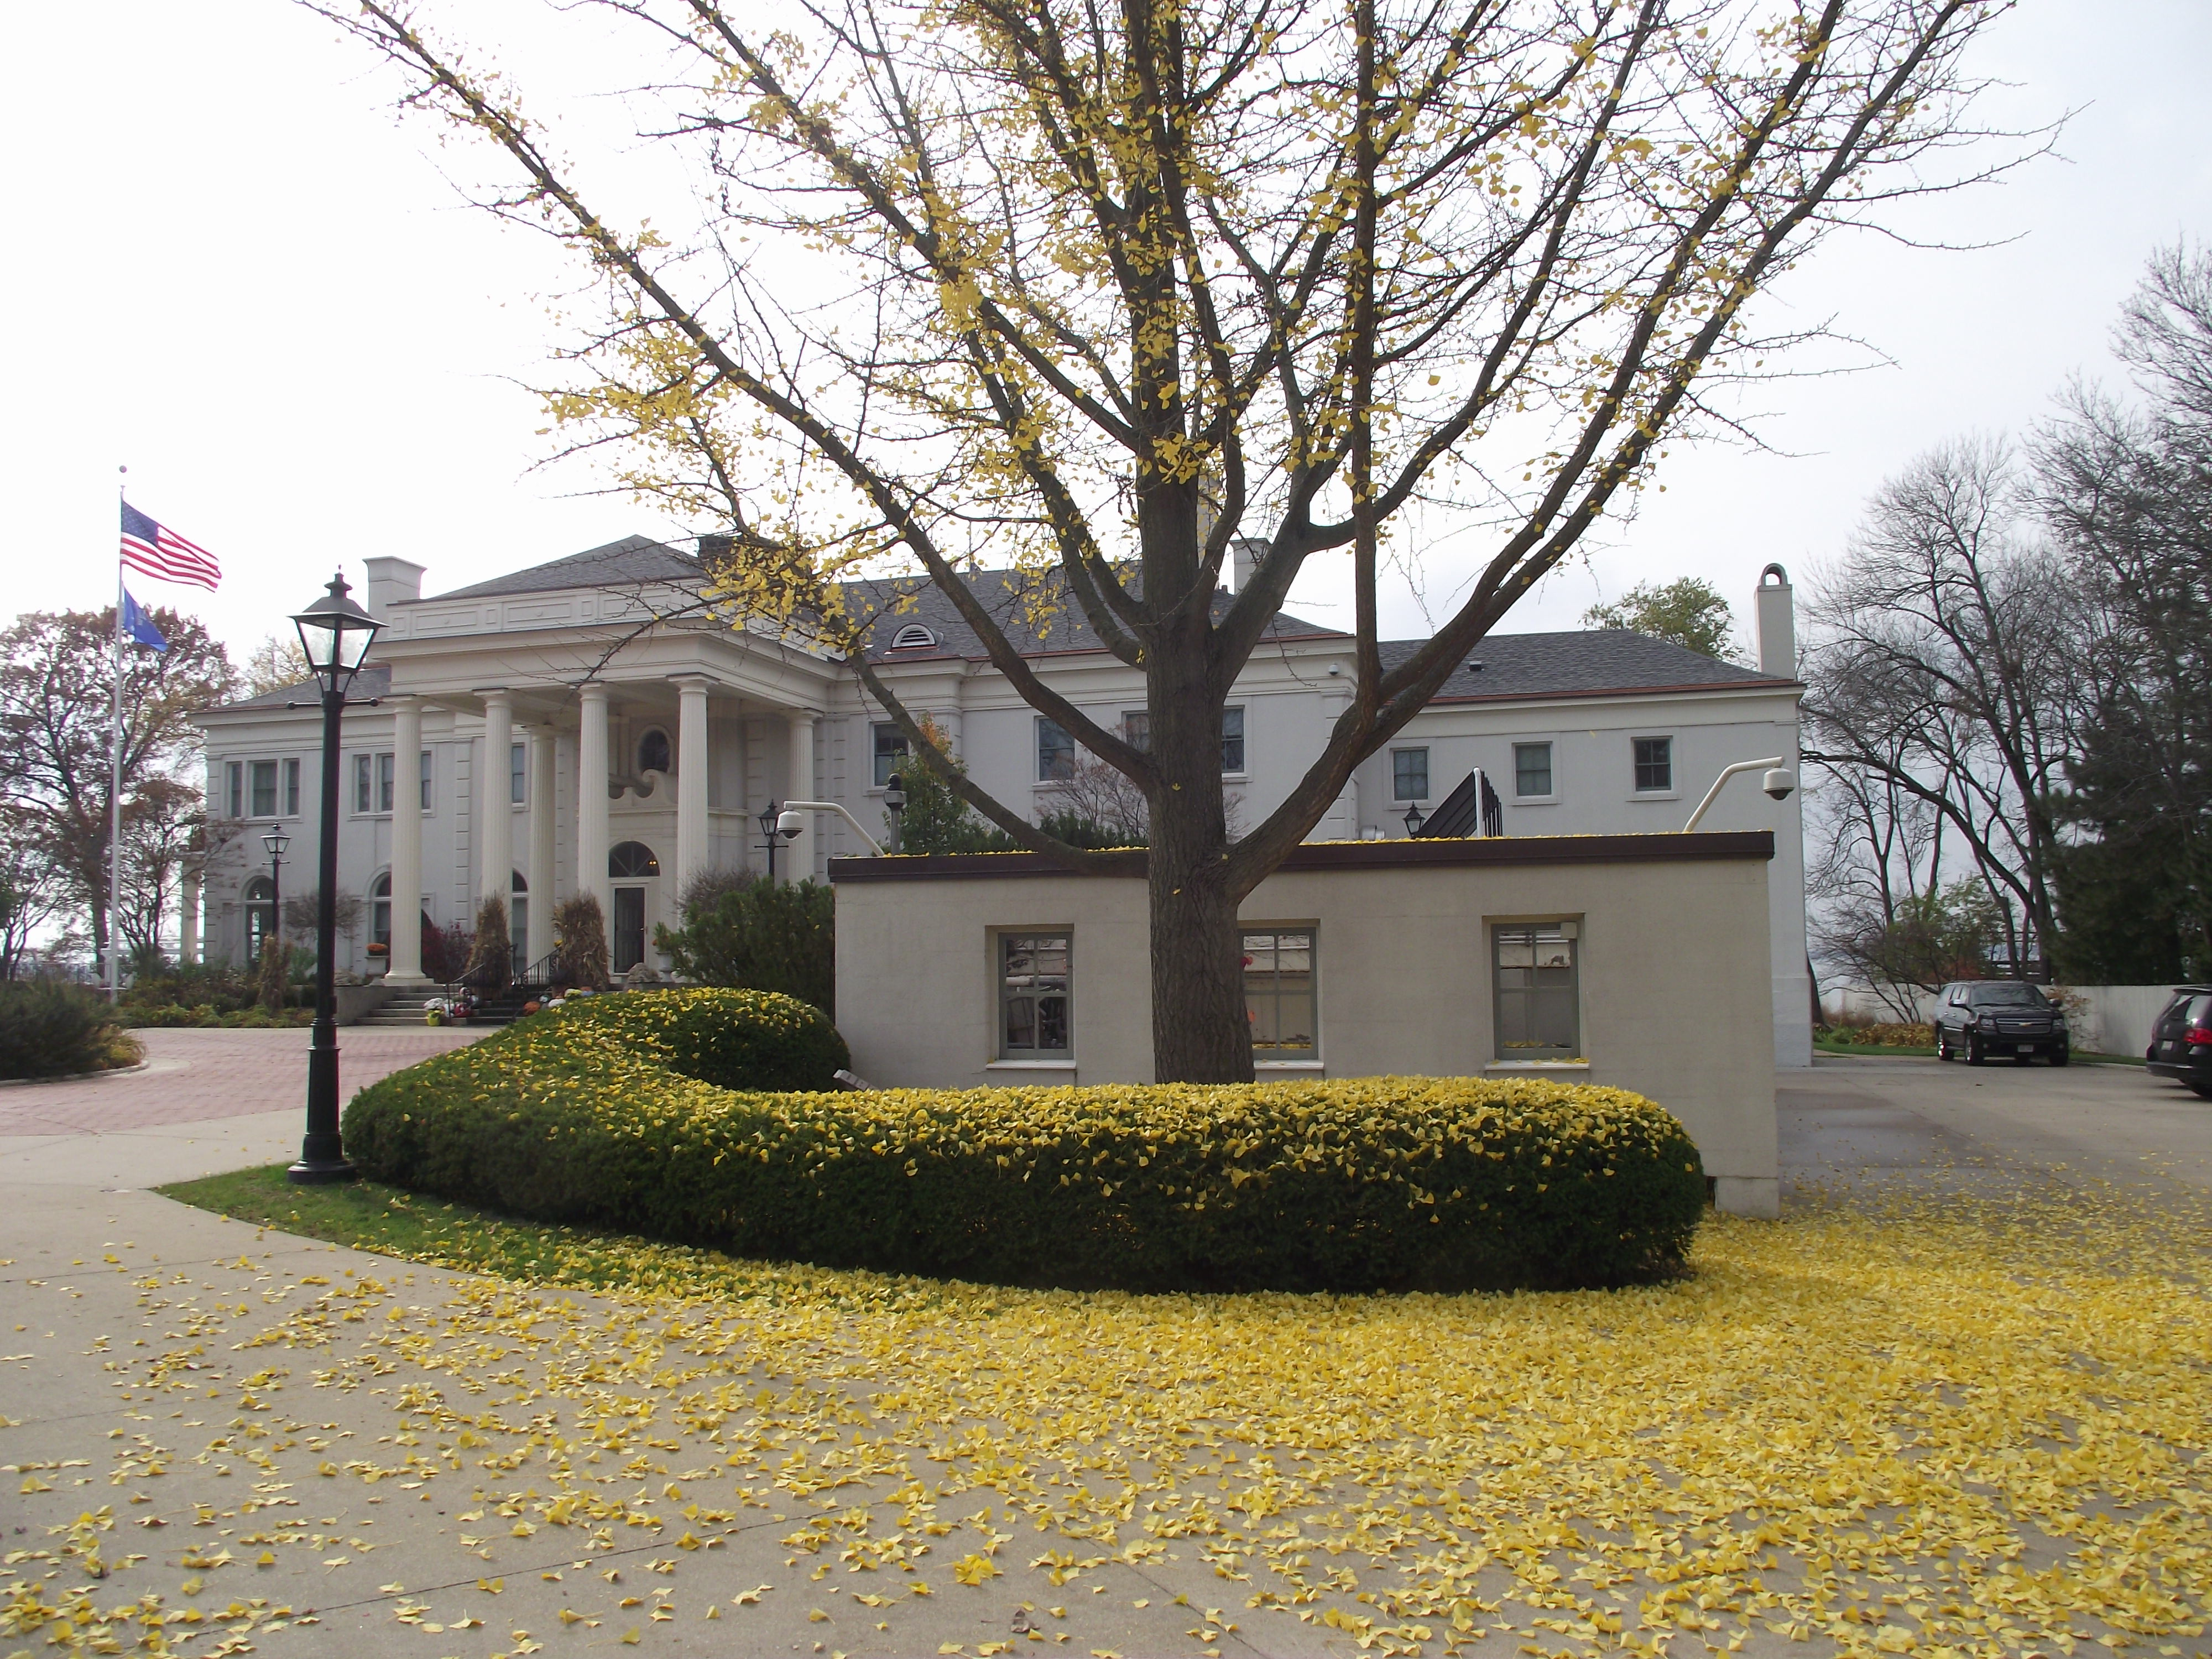 Governor's residence